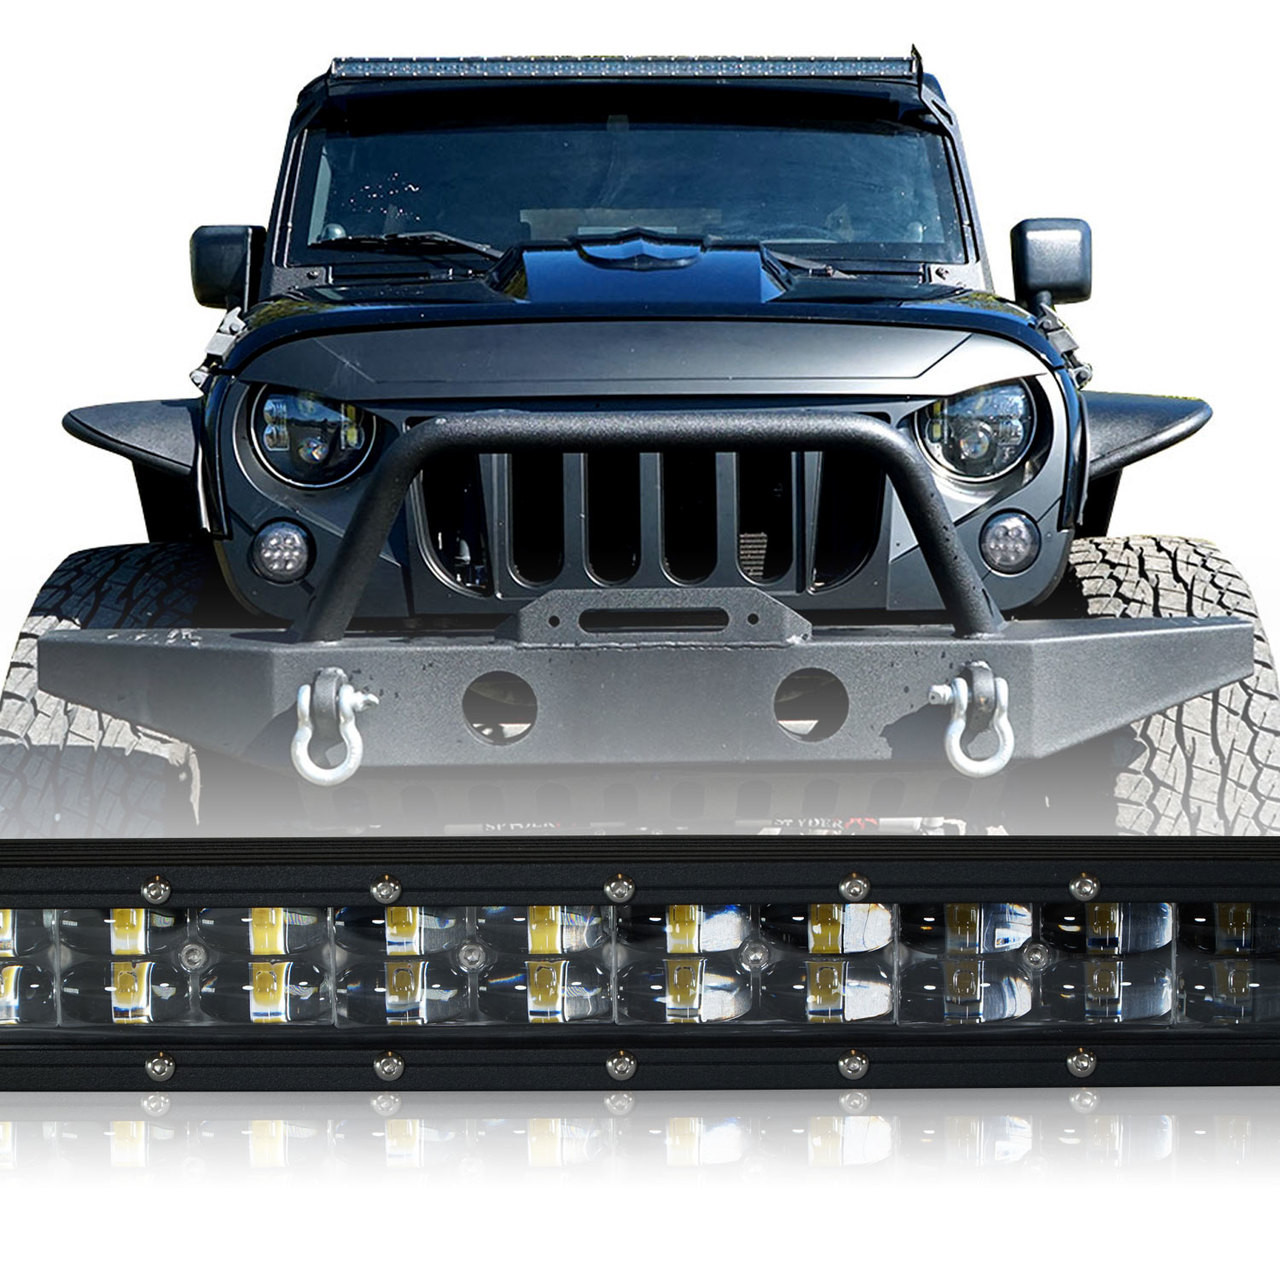 Led Light Bar 288w 50 Inches Bracket Wiring Harness Kit For Wrangler Fog Jk 2007 2017